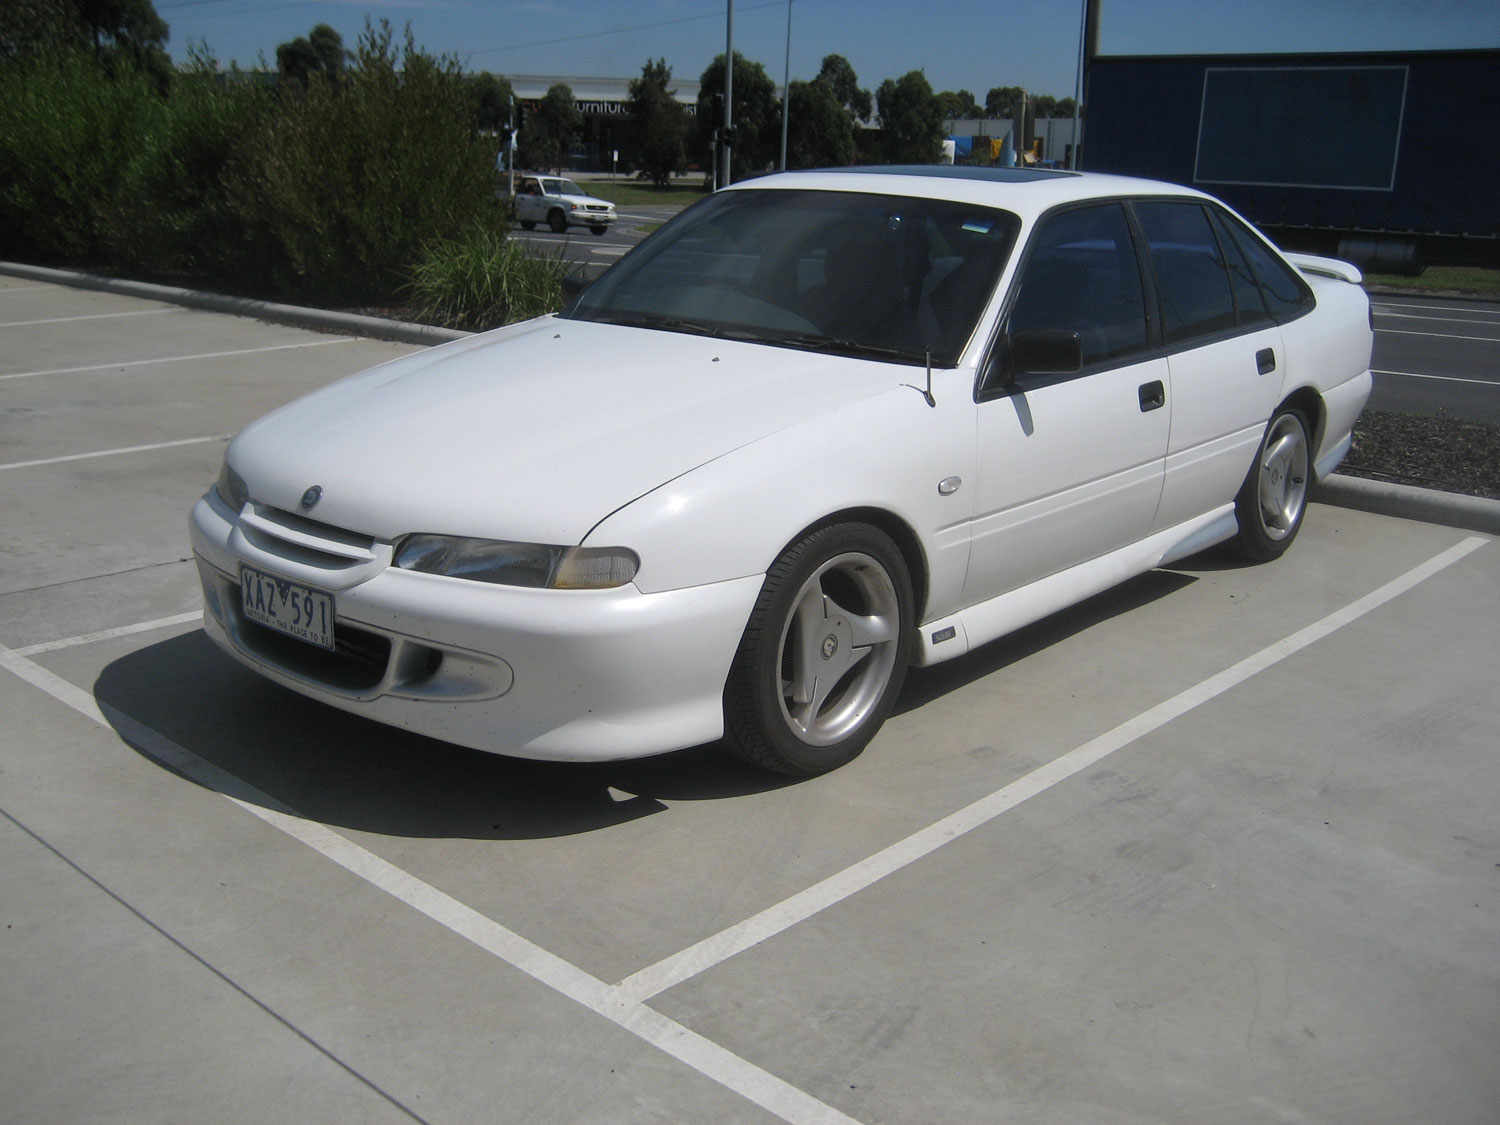 1995 Holden Commodore HSV Clubsport